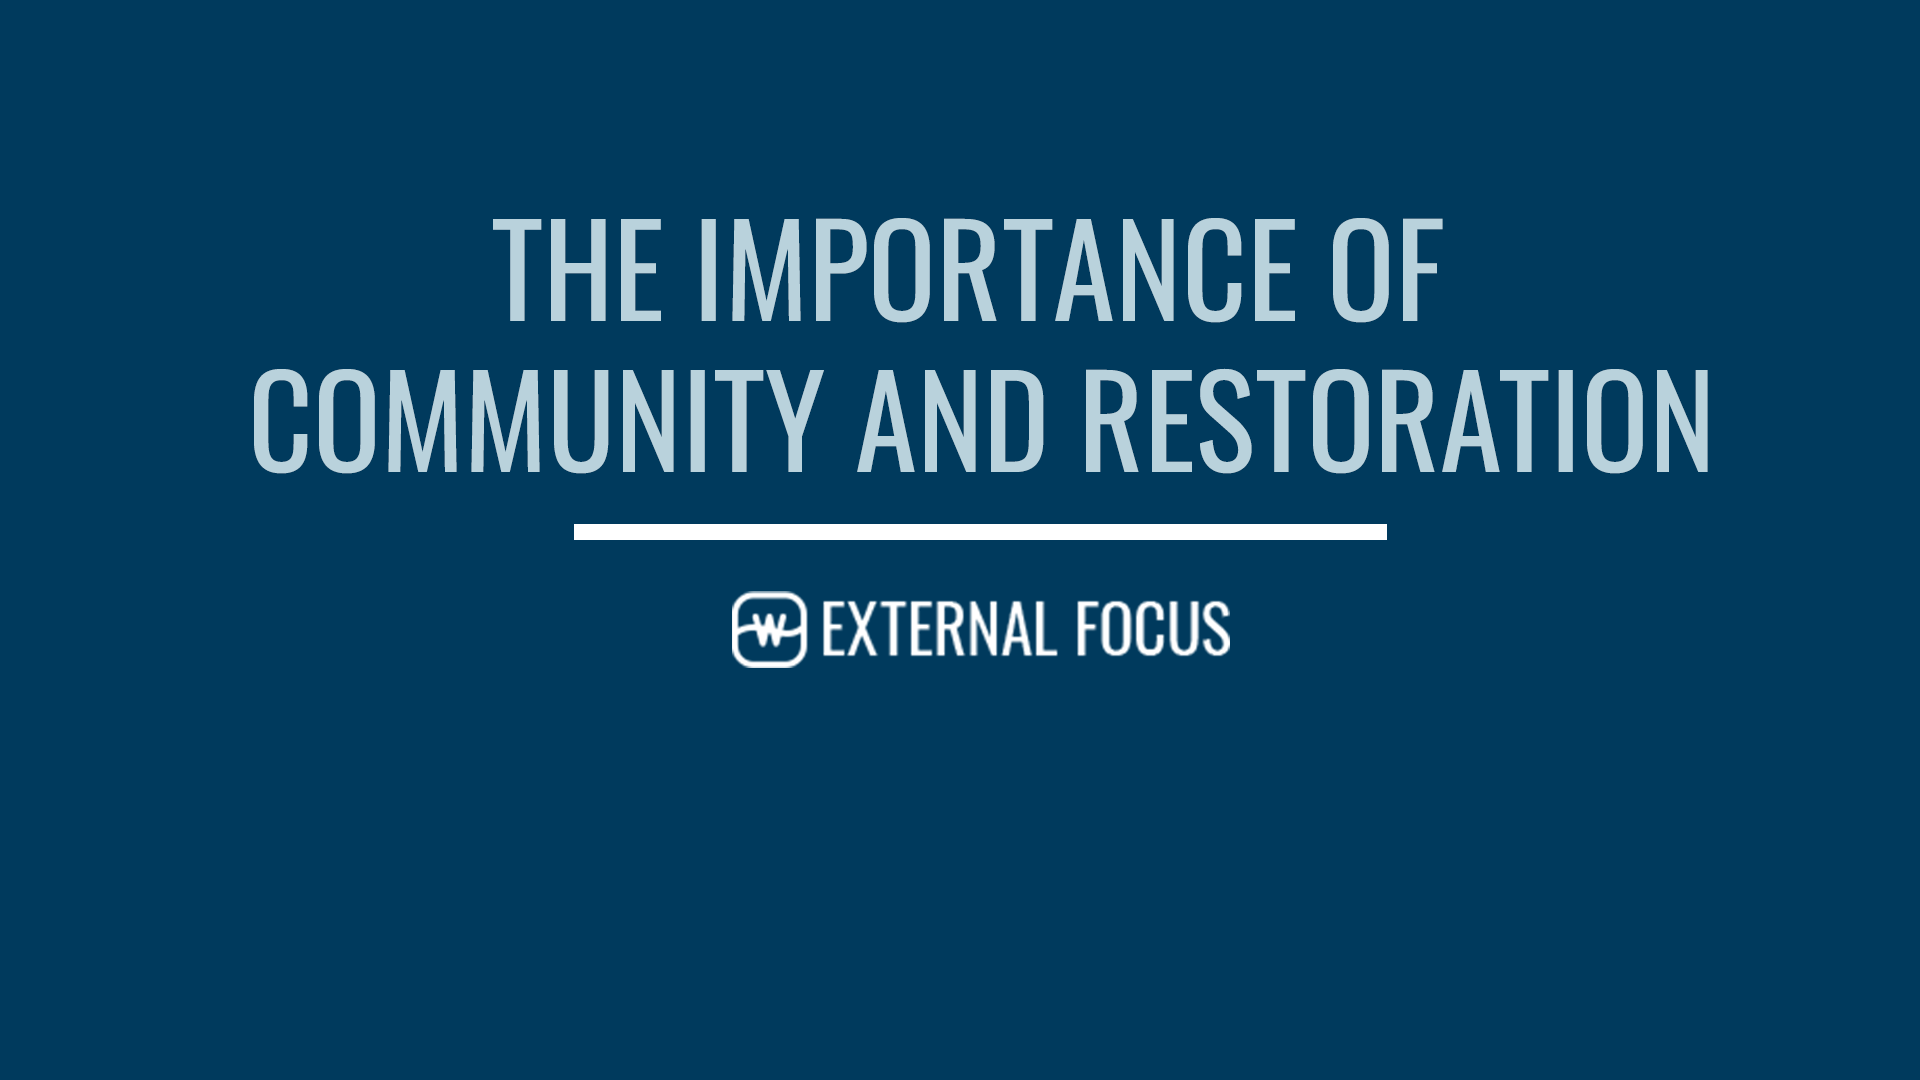 The Importance of Community and Restoration